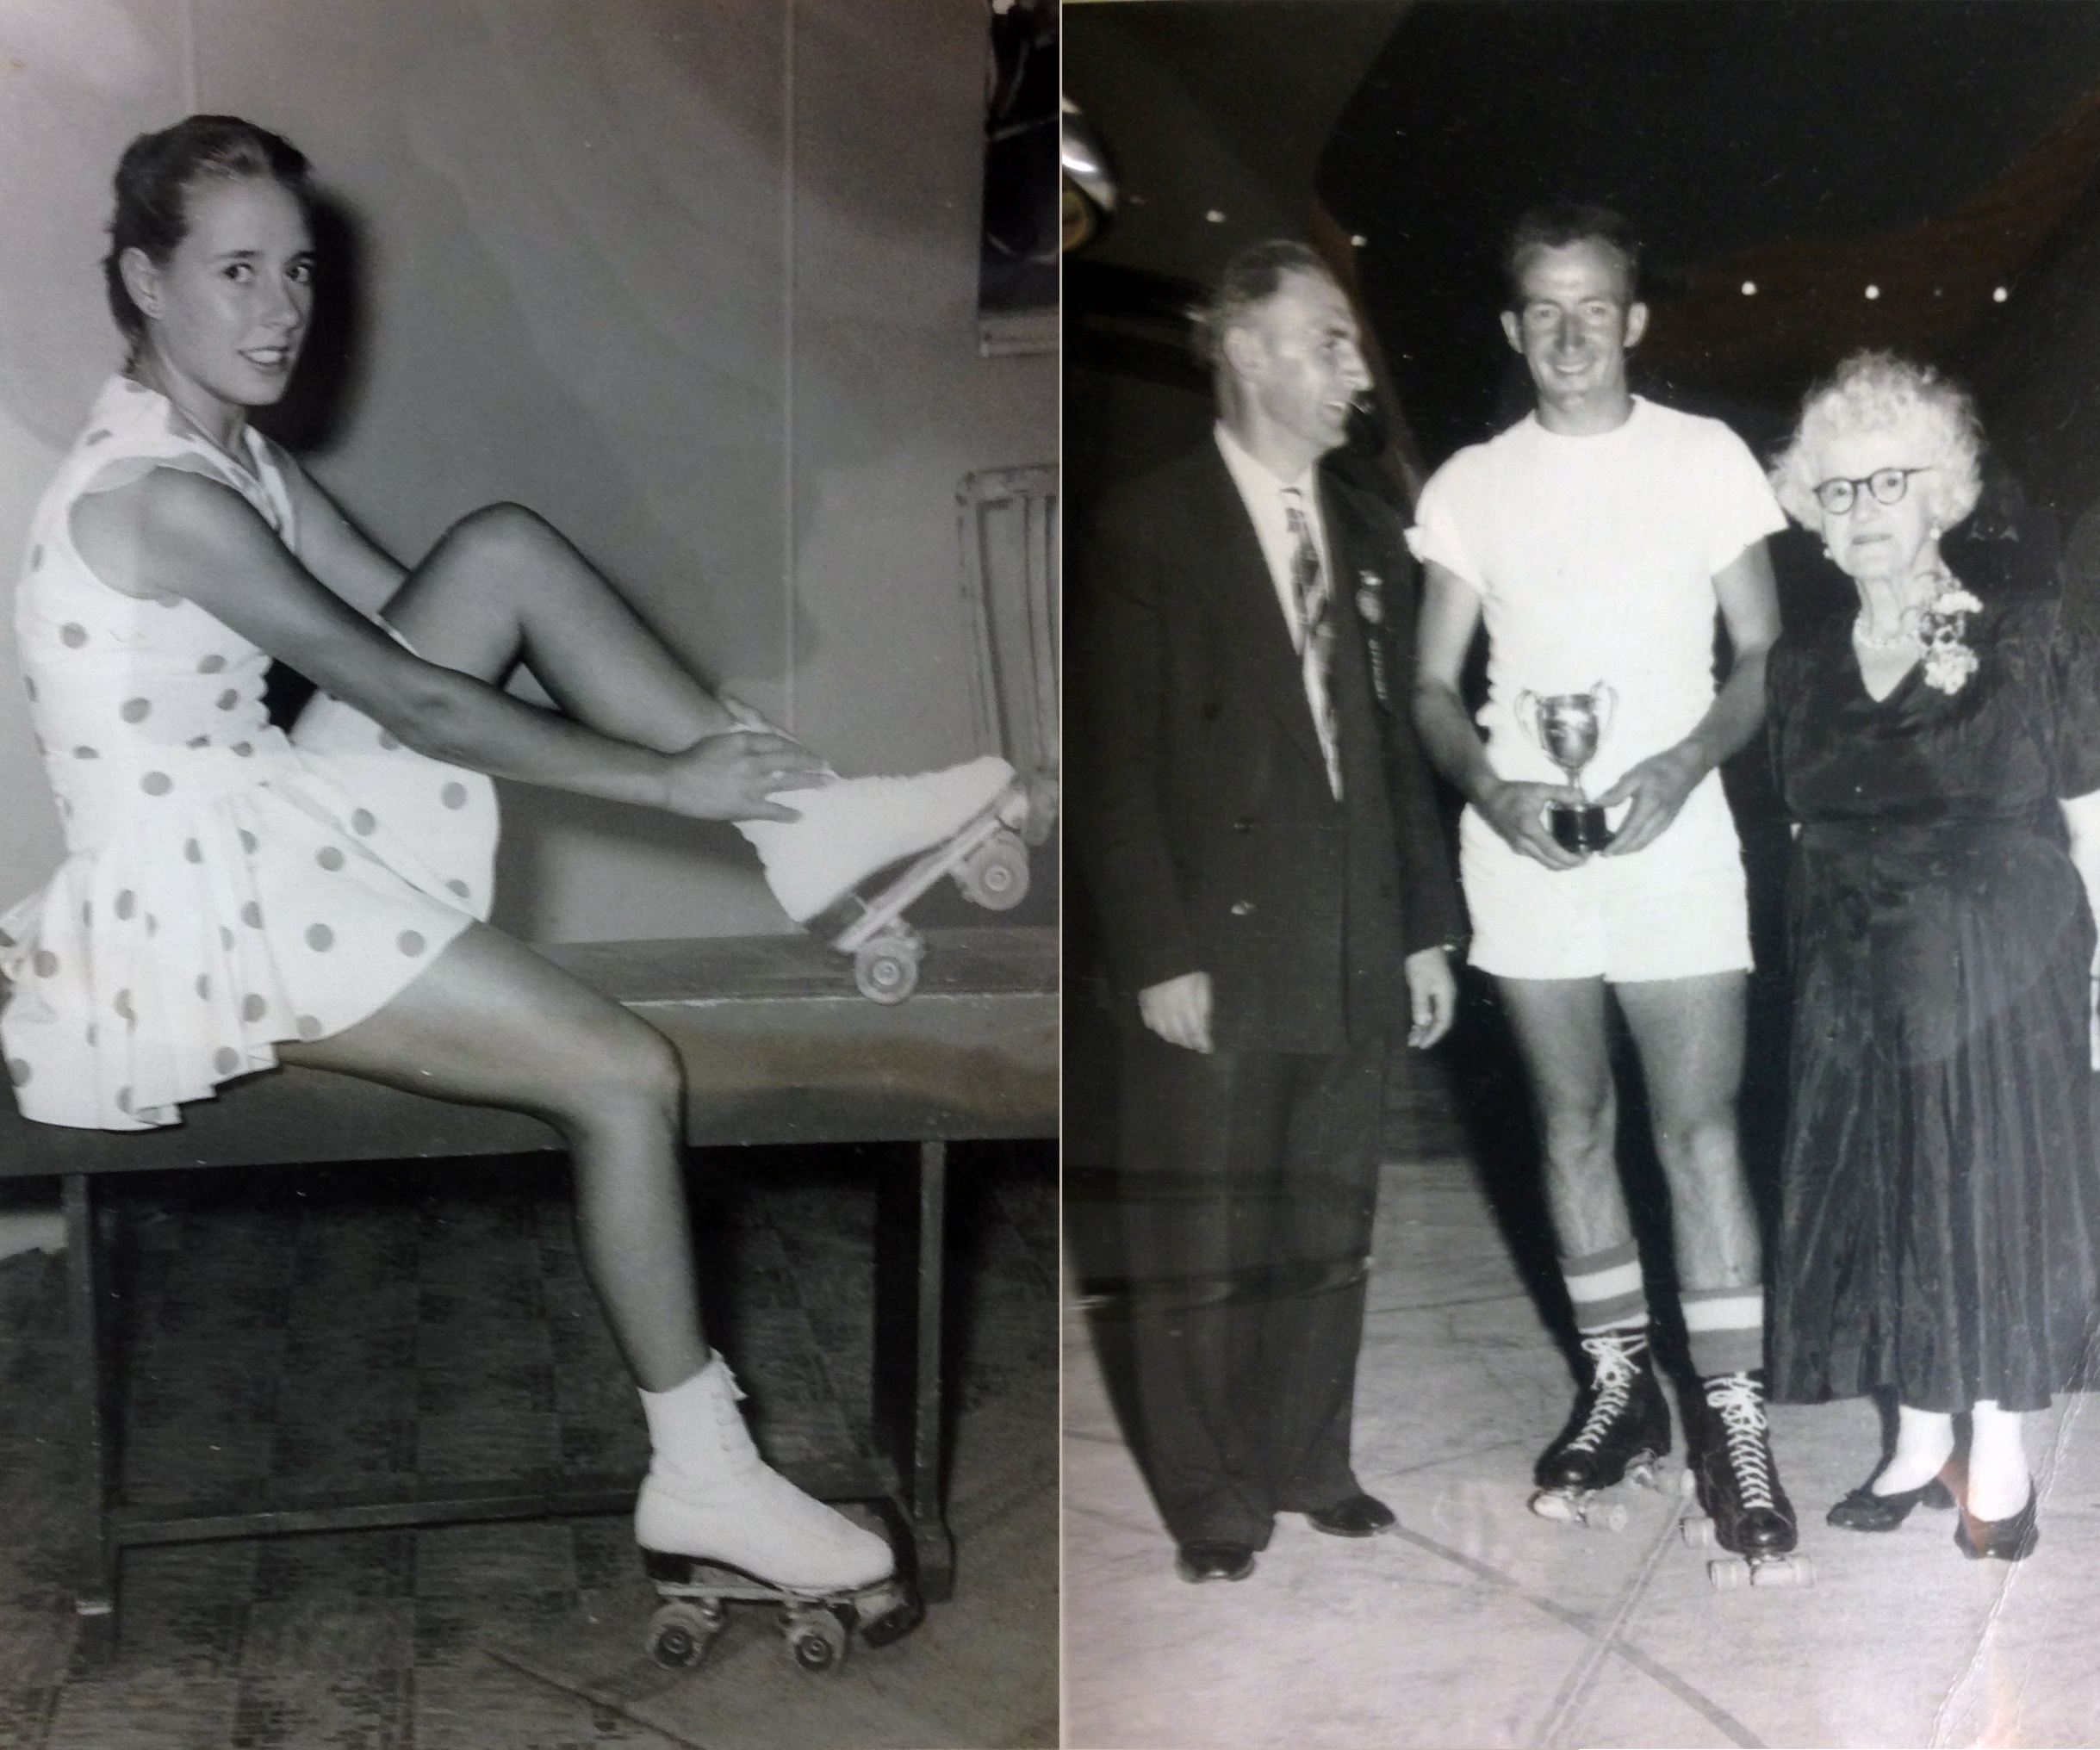 Roller skating new zealand - The Club Looks Like It Was A Lot Of Fun A Place To Socialise Wear Shorts And Short Dresses And Take The Olympic Oath While Wearing Roller Skates